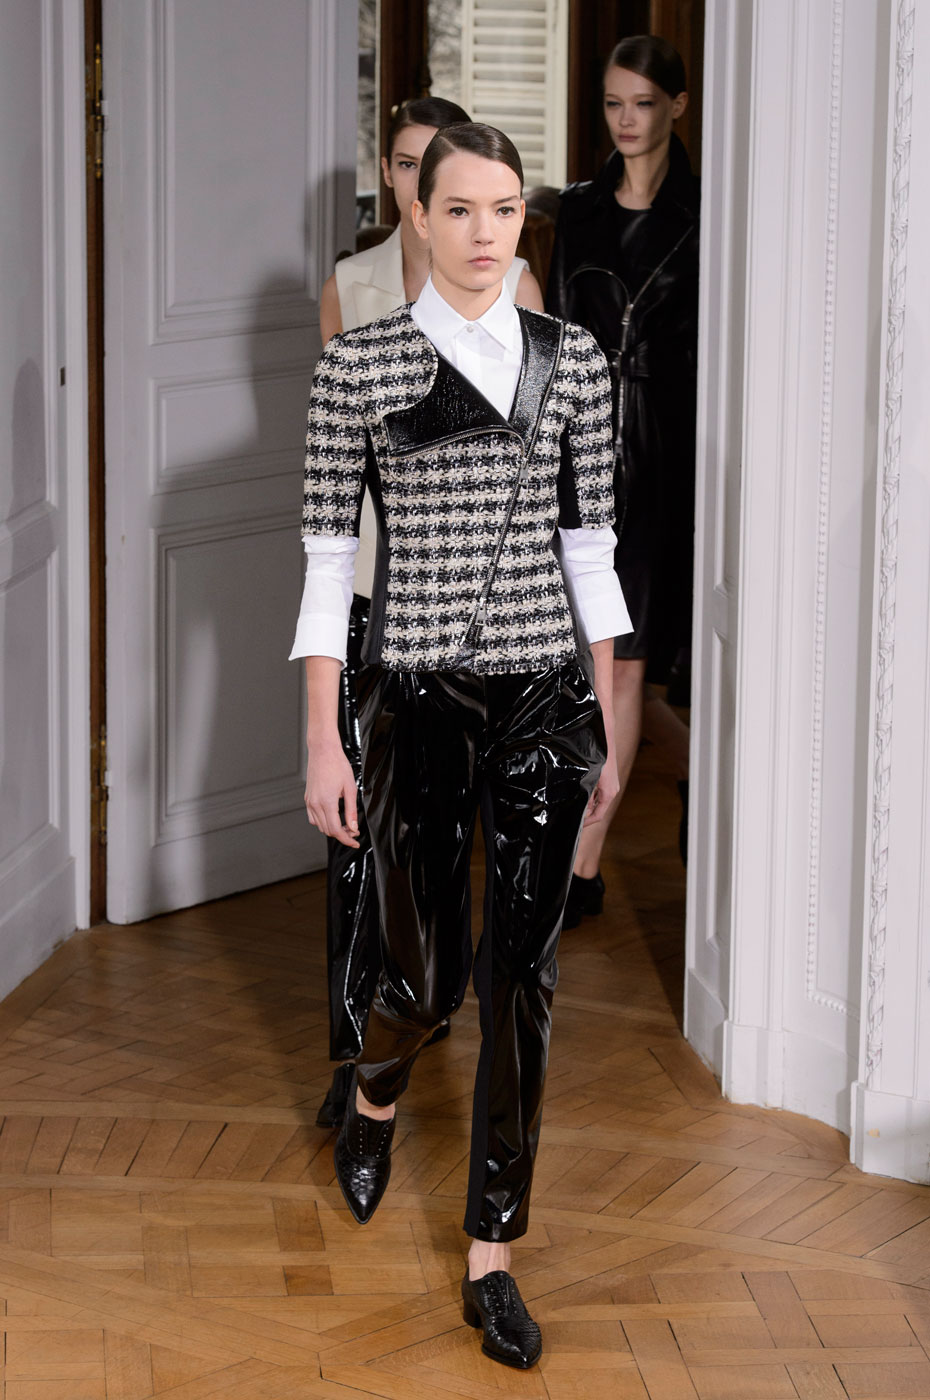 Bouchra-Jarrar-fashion-runway-show-haute-couture-paris-spring-summer-2015-the-impression-51